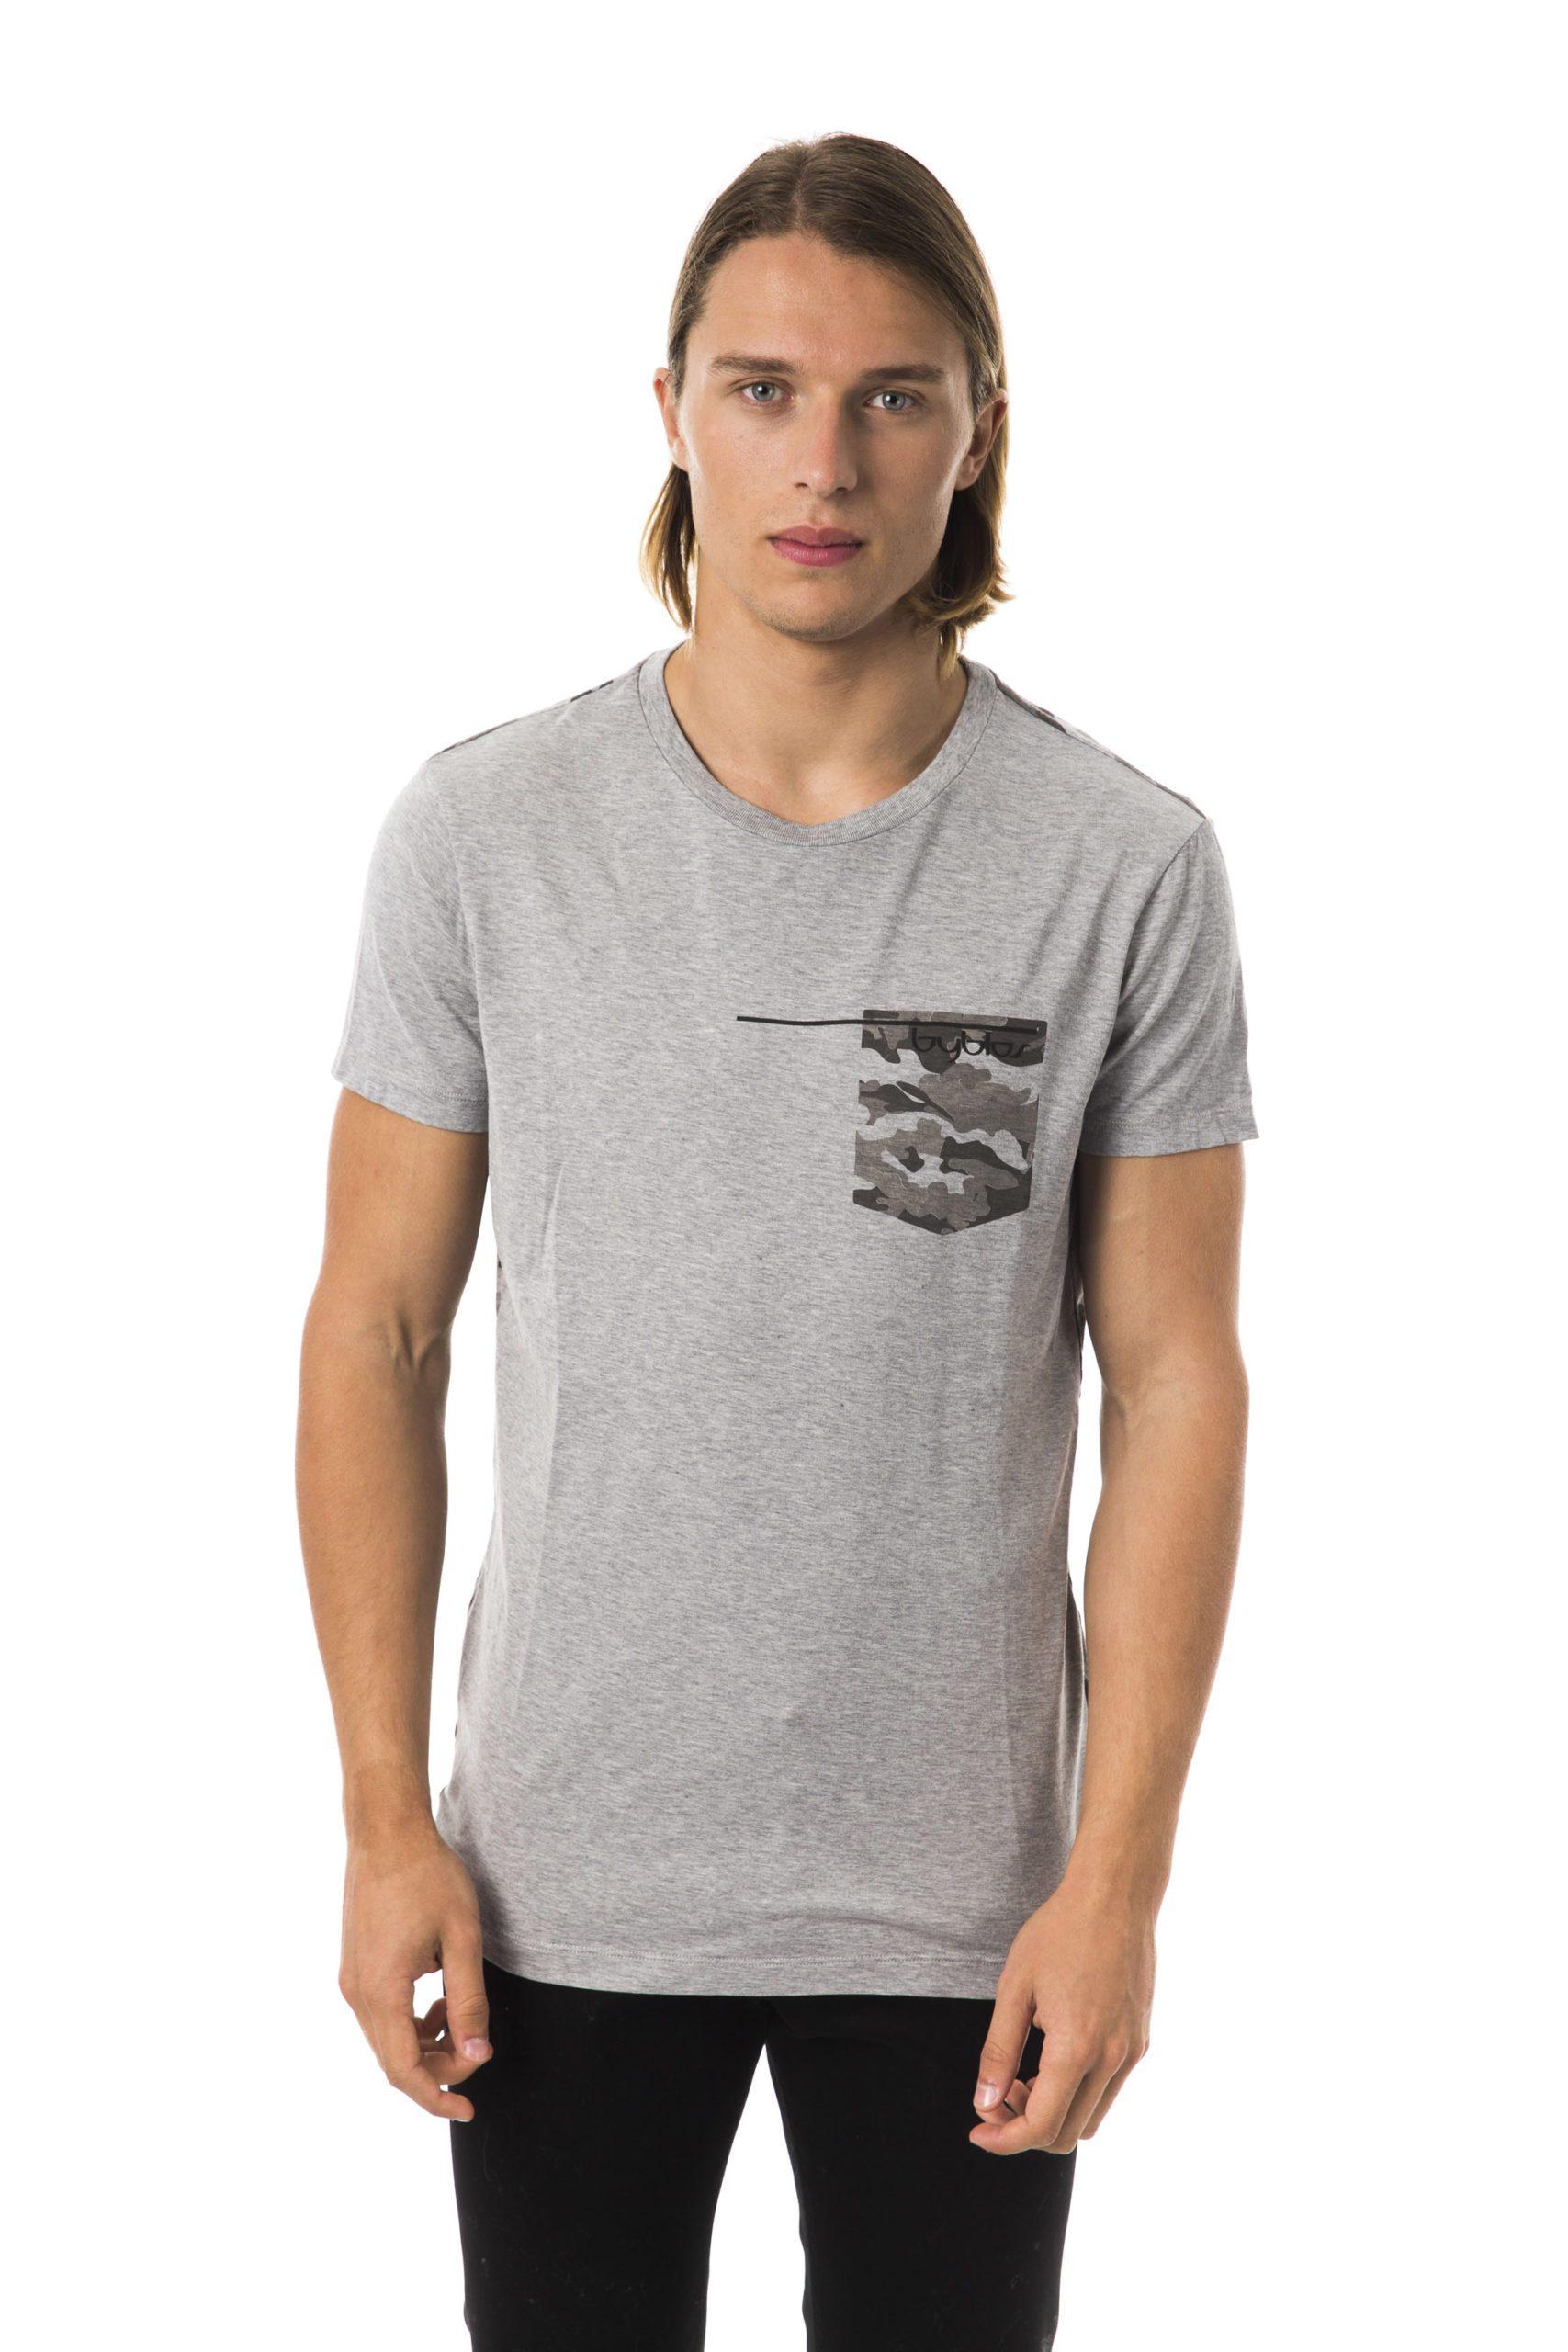 Byblos Men's T-Shirt Gray BY678532 - M